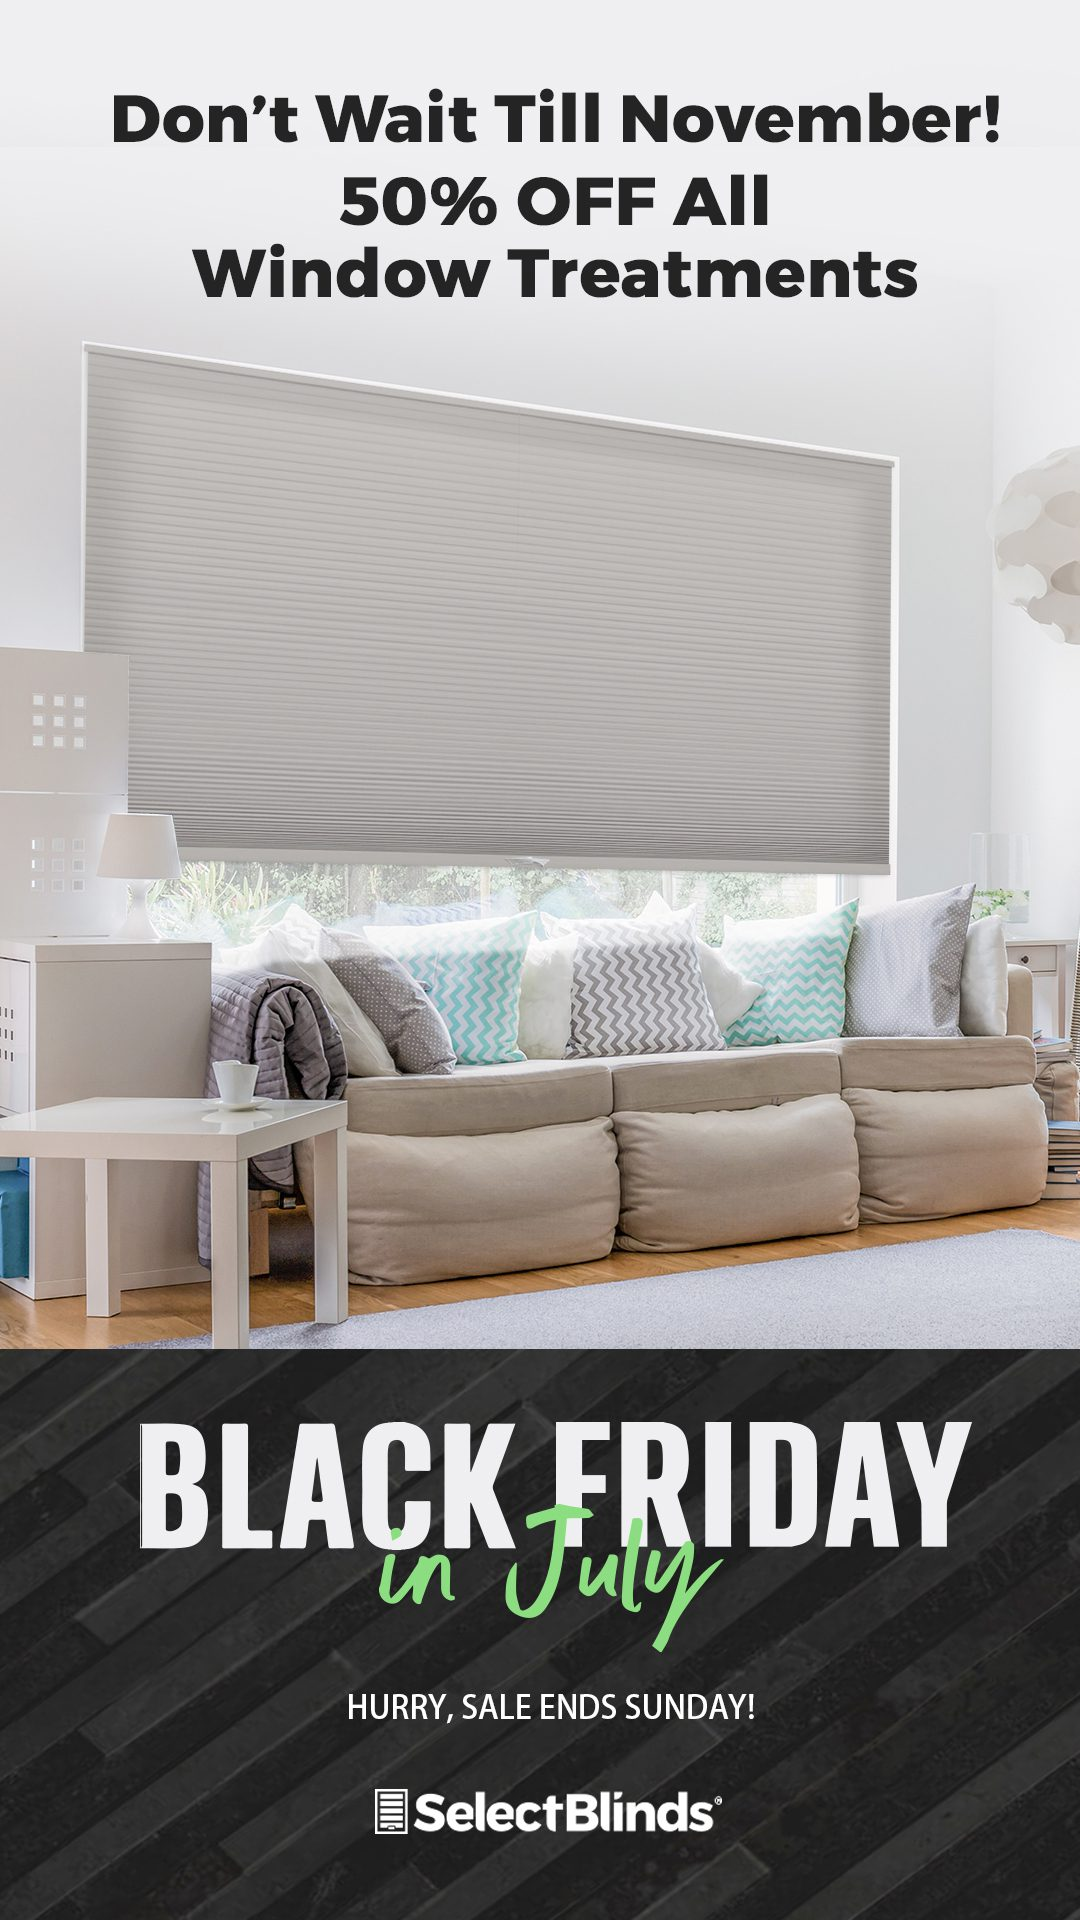 Online Black Friday Sale in July from Select Blinds